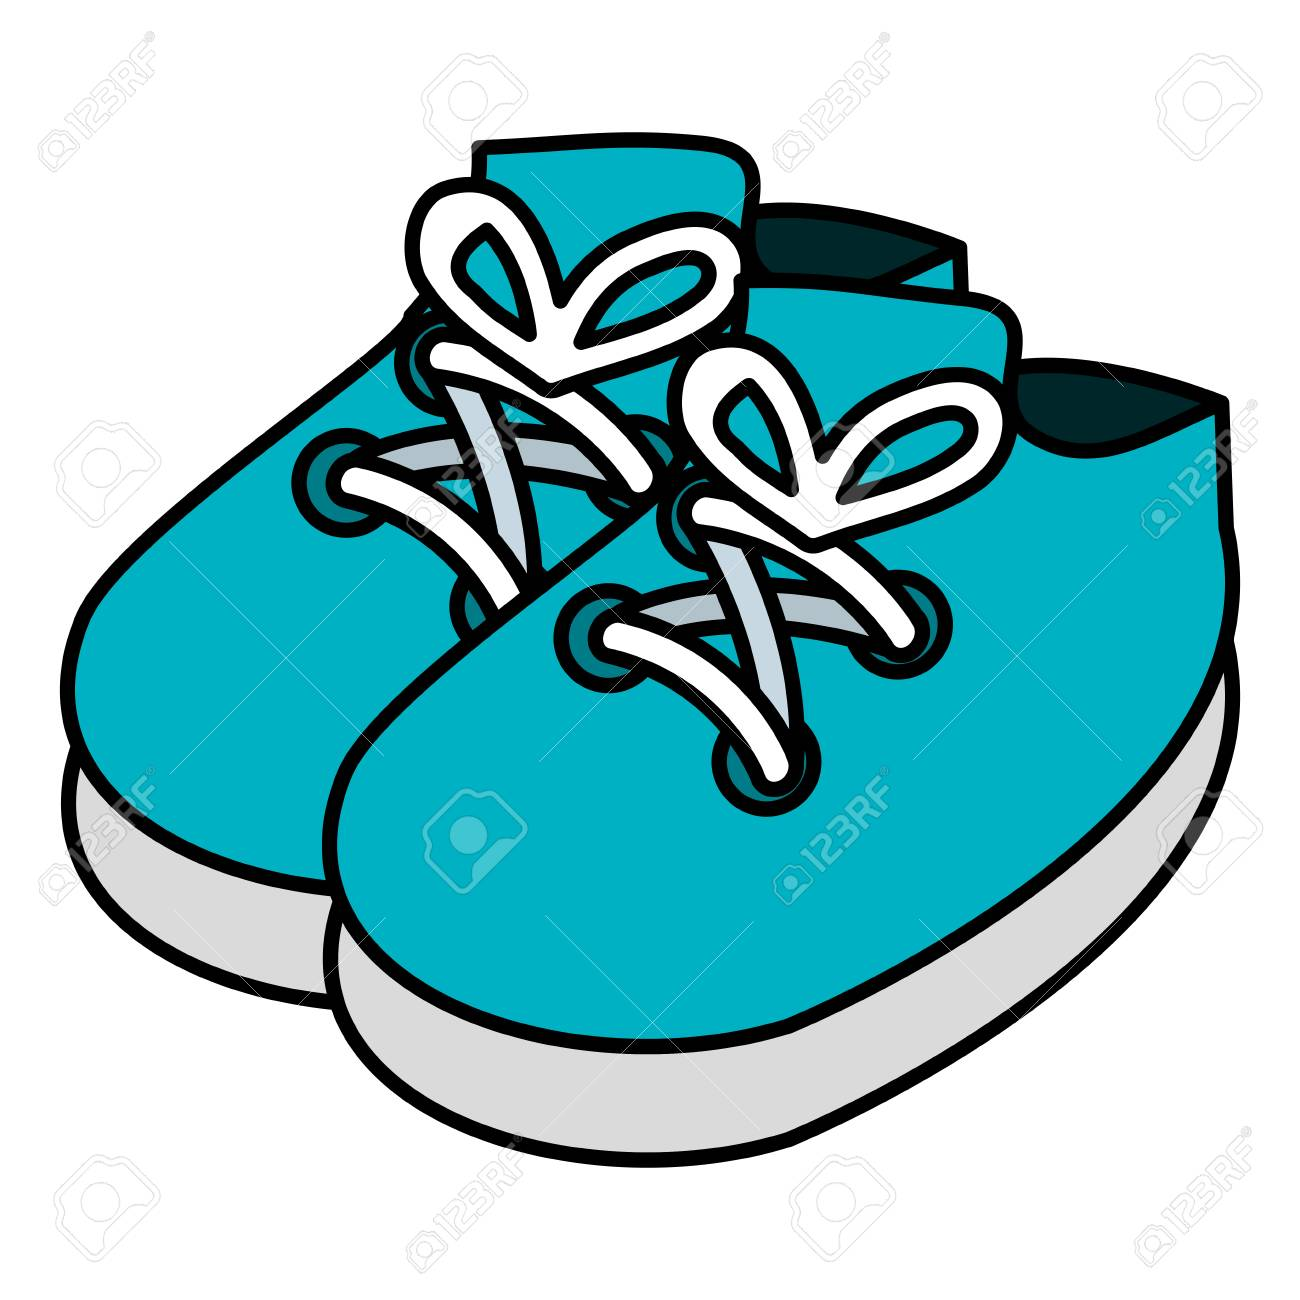 Baby Shoes Isolated Icon Vector Illustration Design Royalty Free Cliparts Vectors And Stock Illustration Image 98630174